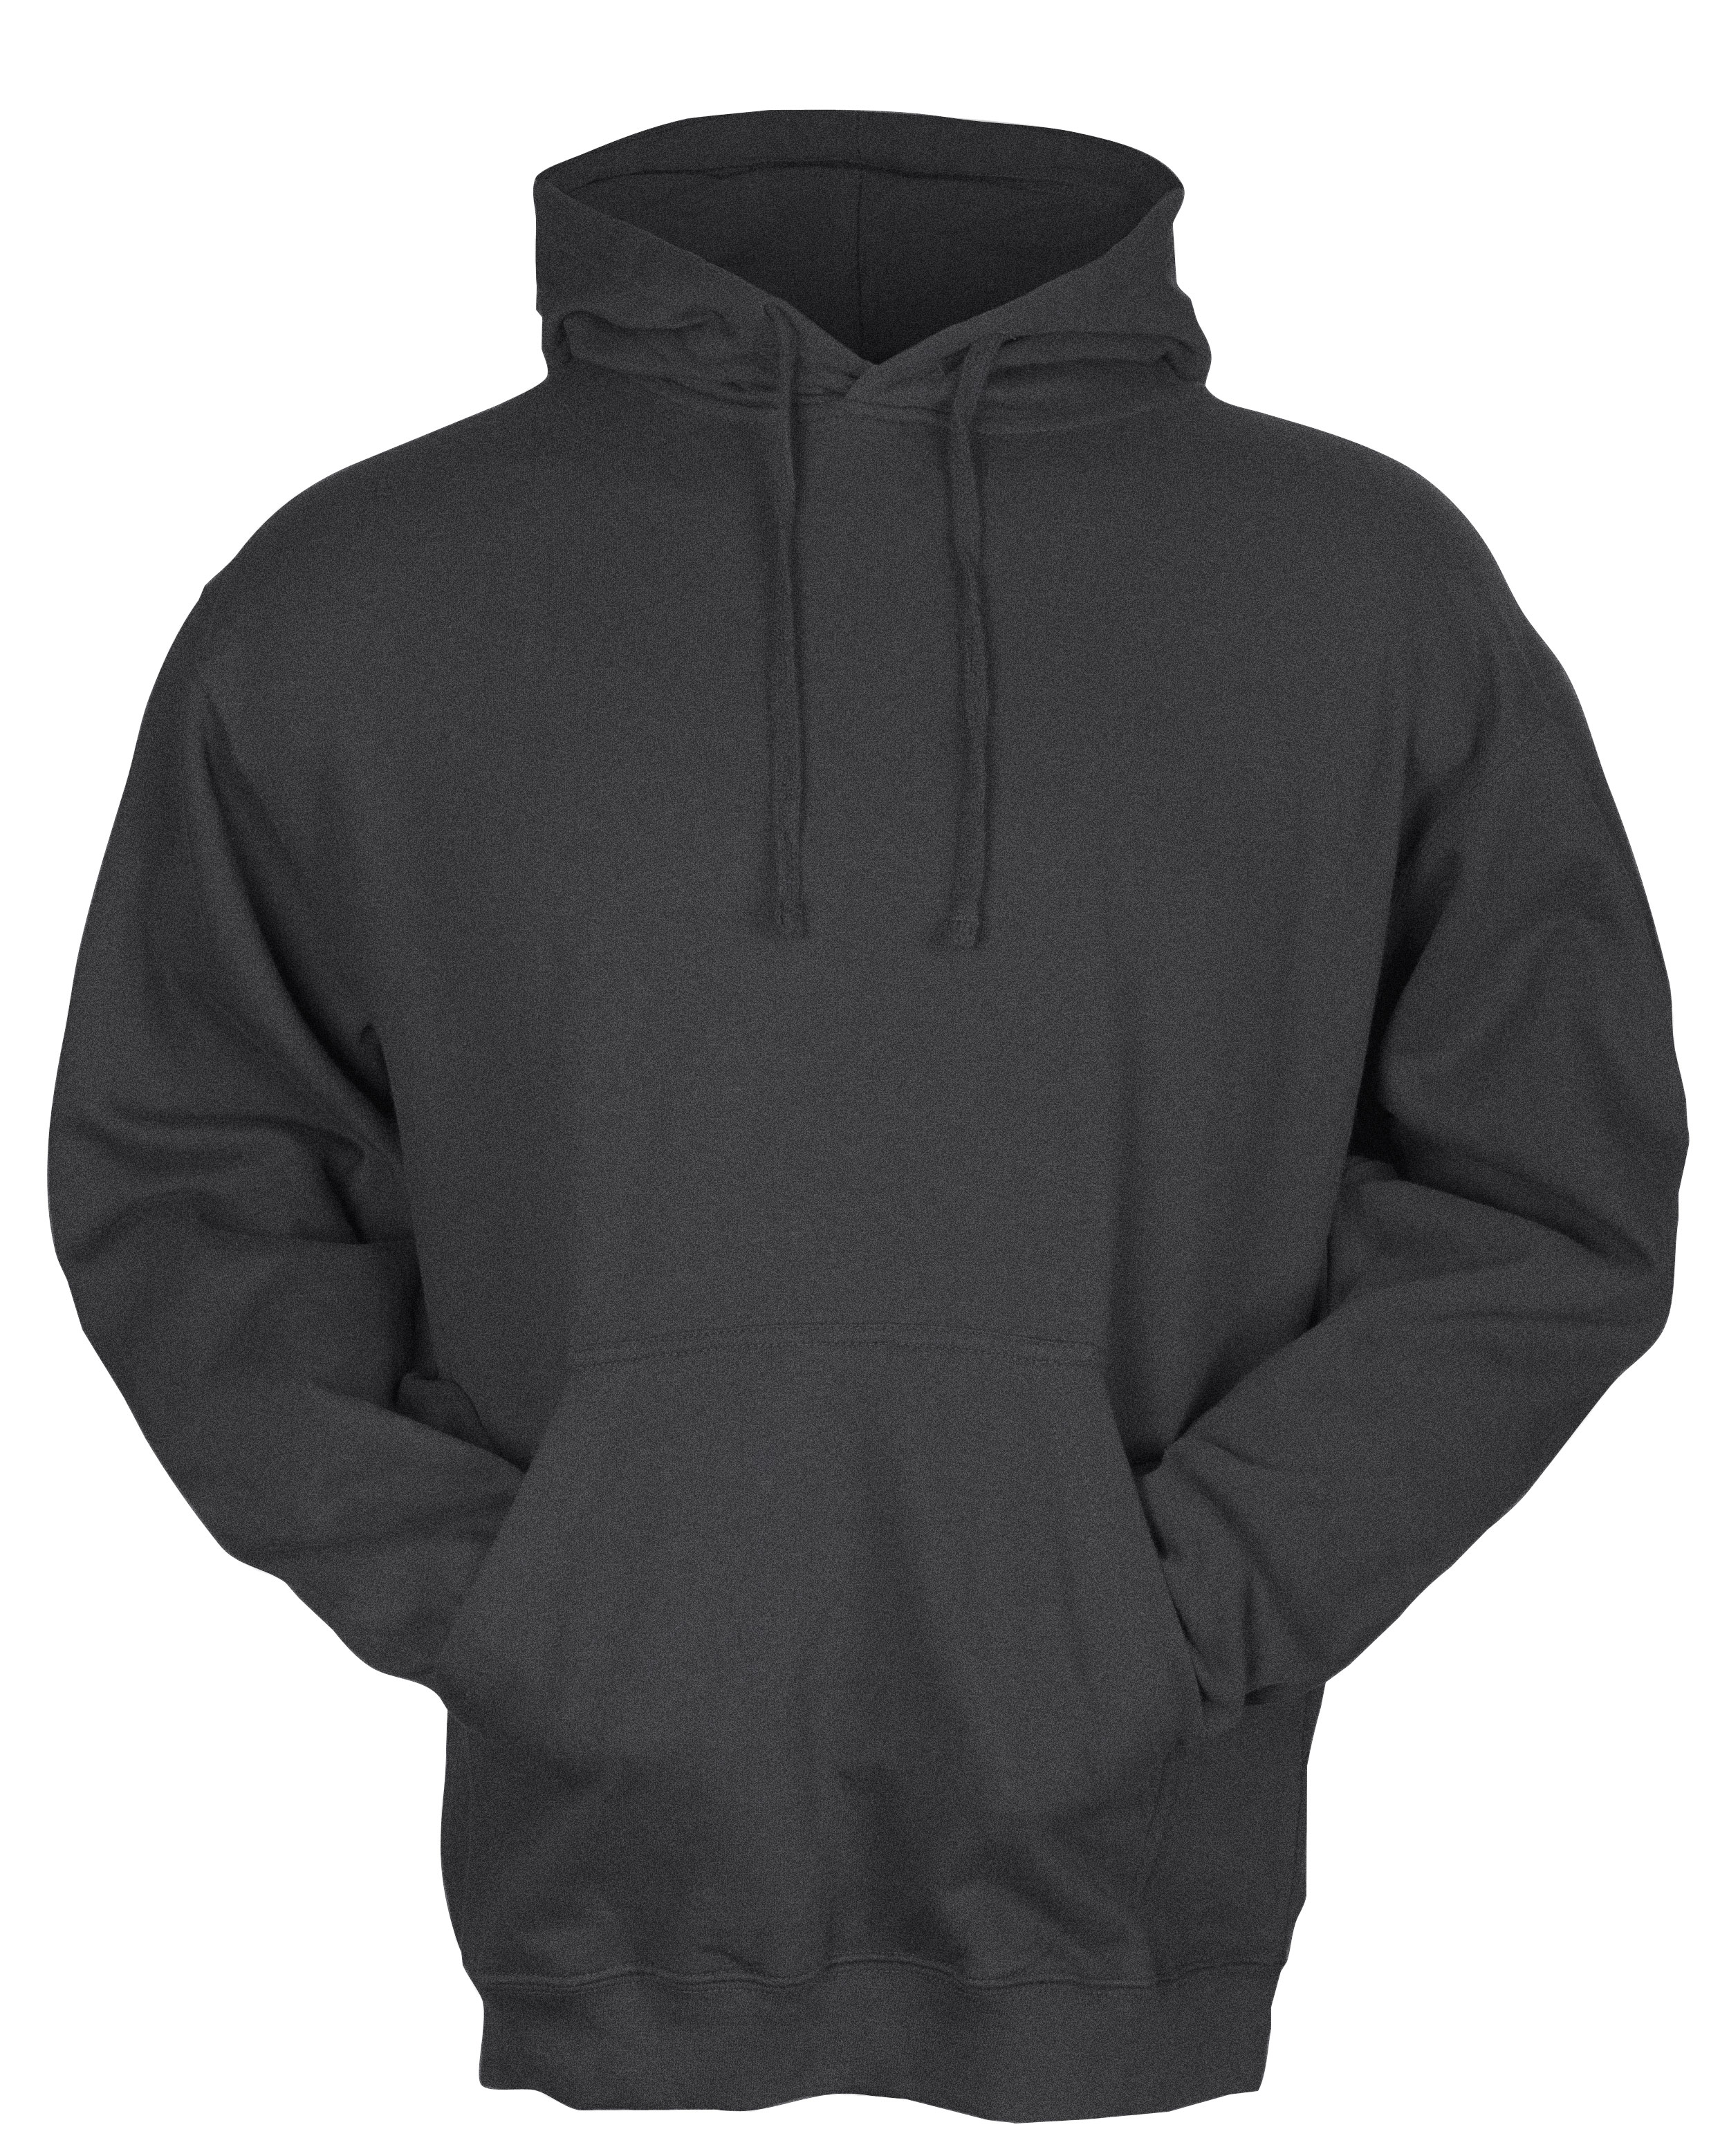 Fleece Pullover Tultex 320 - Unisex Fleece Pullover Hoodie - Friendly